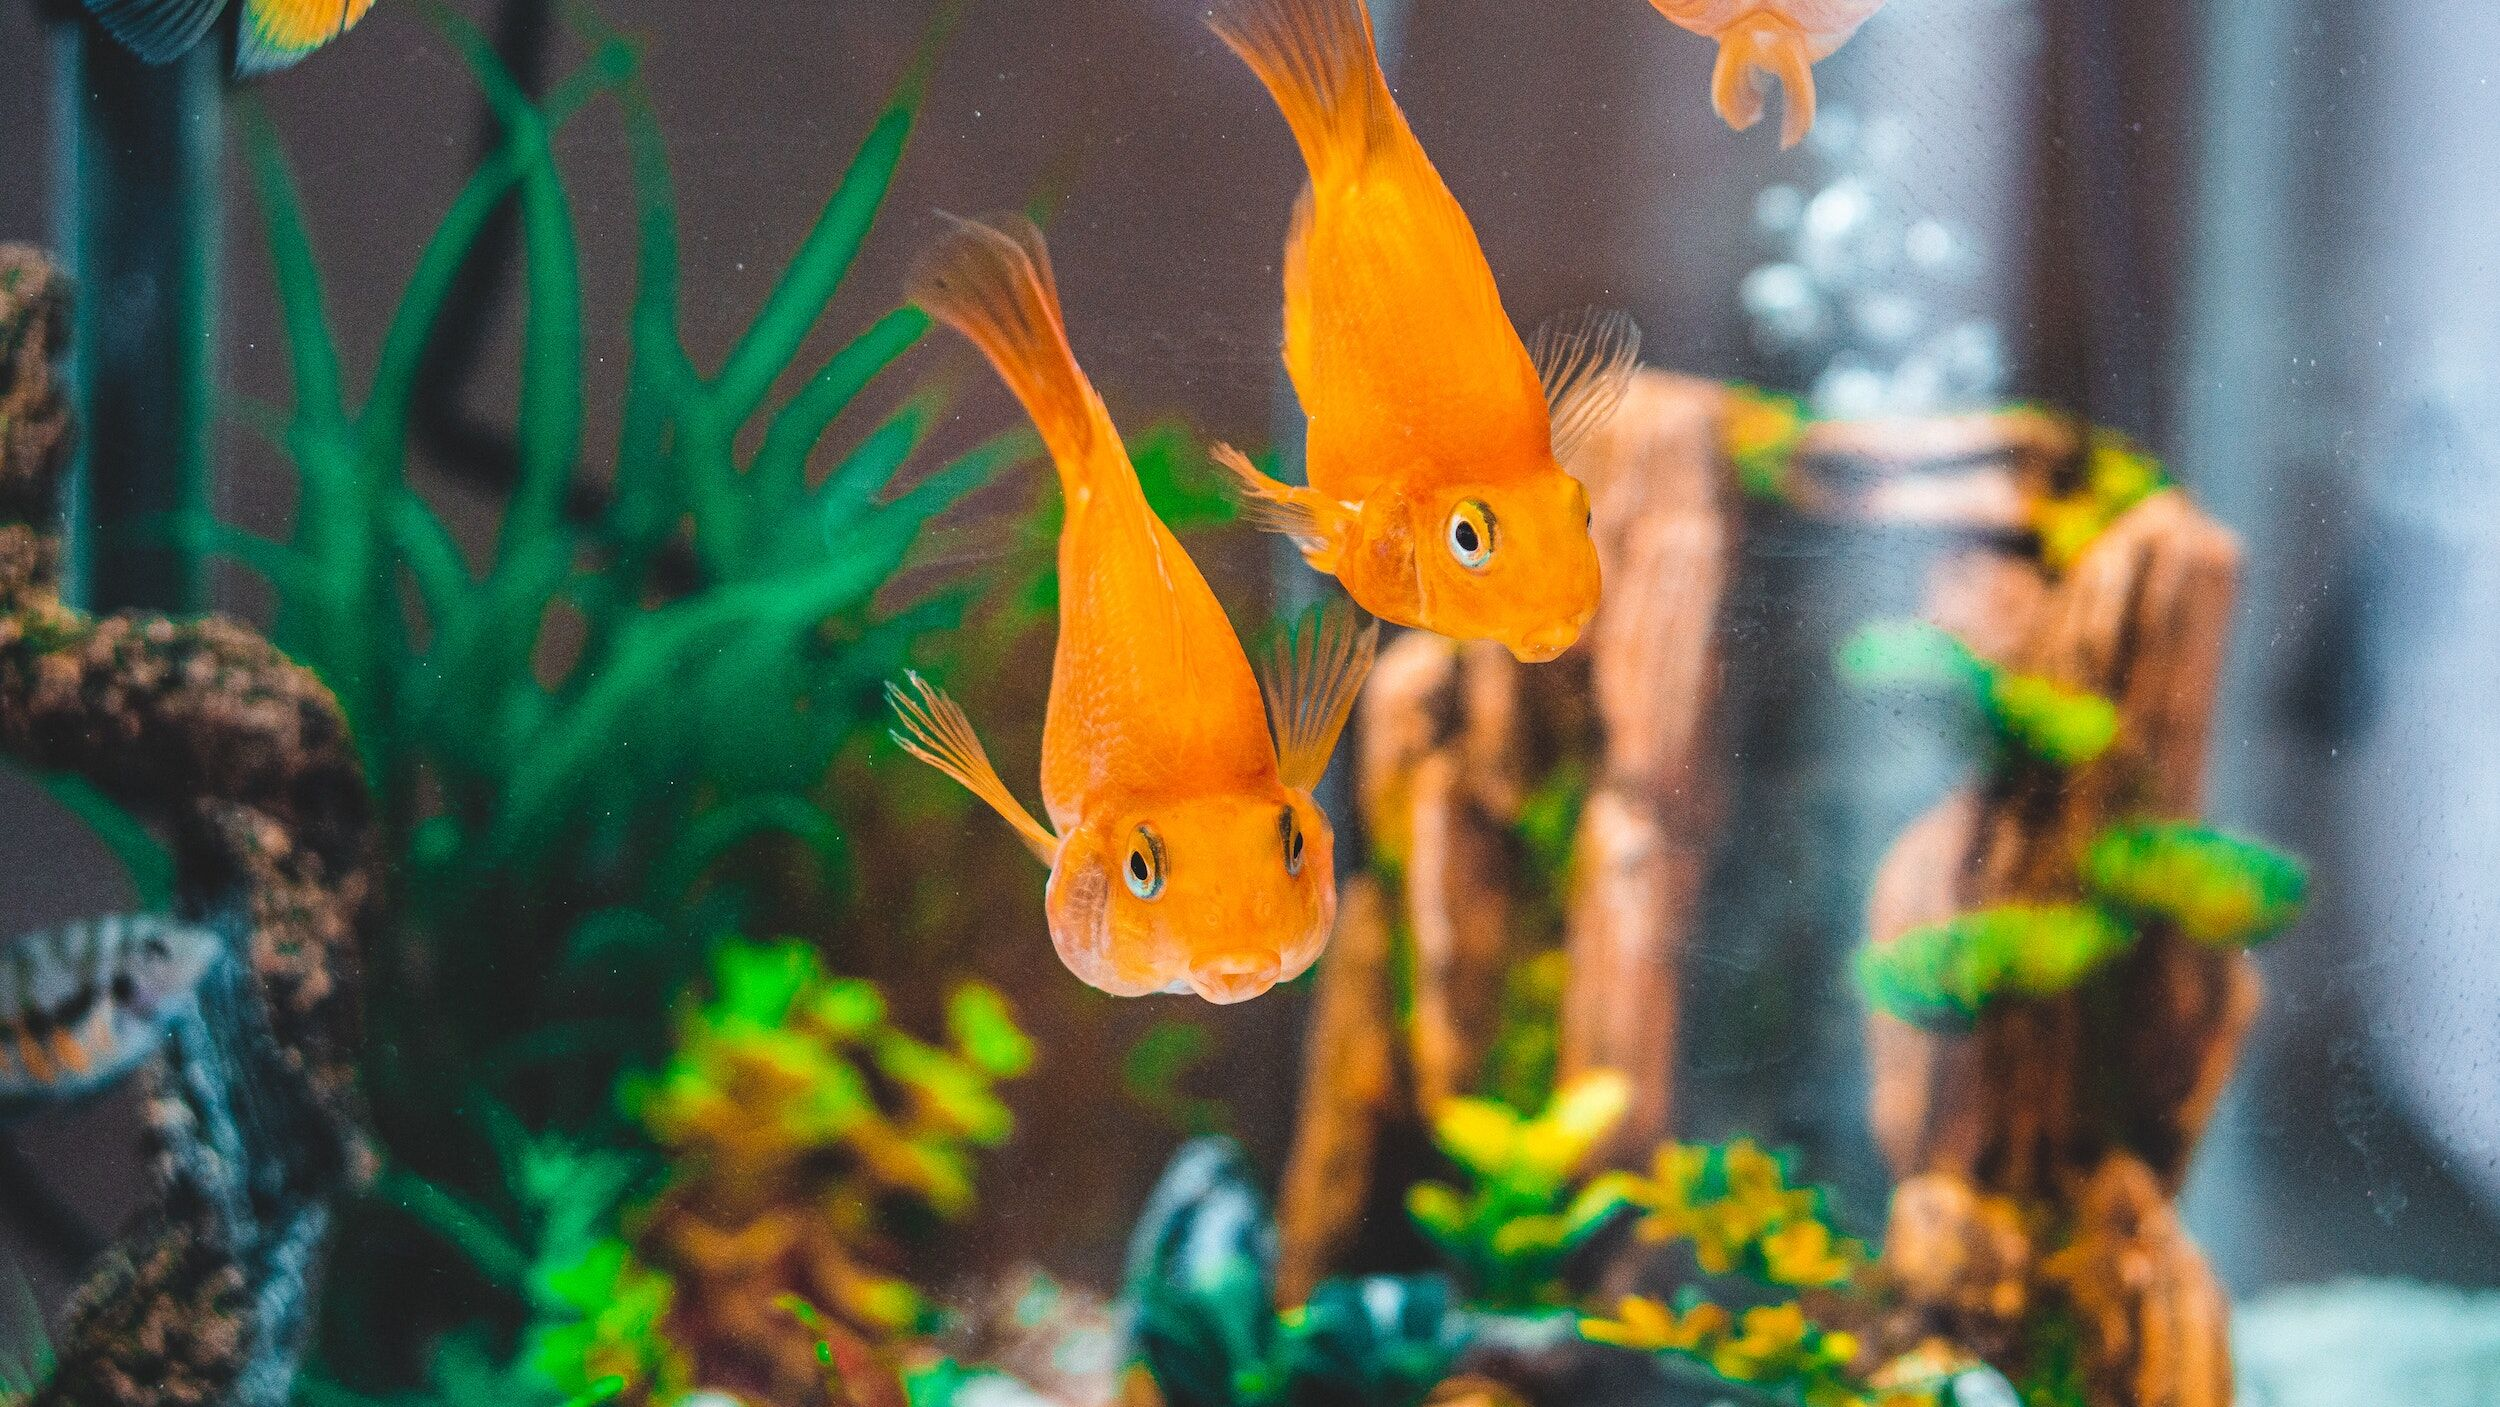 two gold-colored fish in fish tank